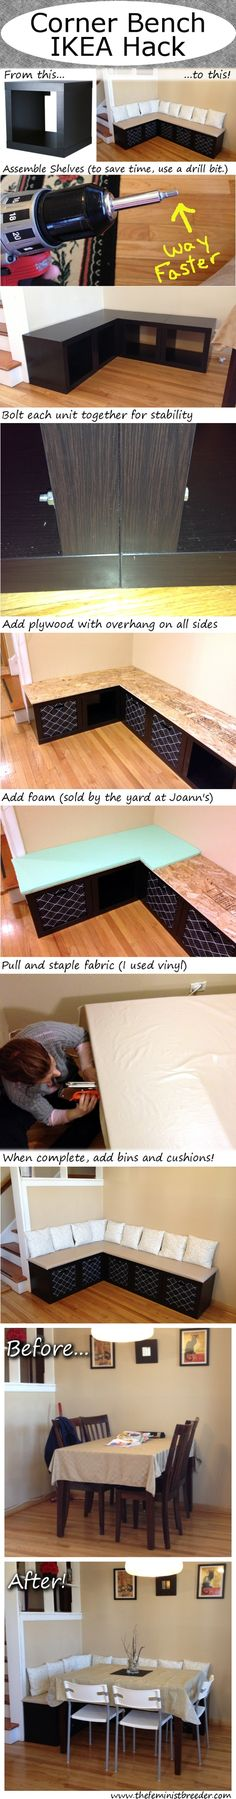 A corner bench with storage made from some IKEA wall shelves and a little upholstering.